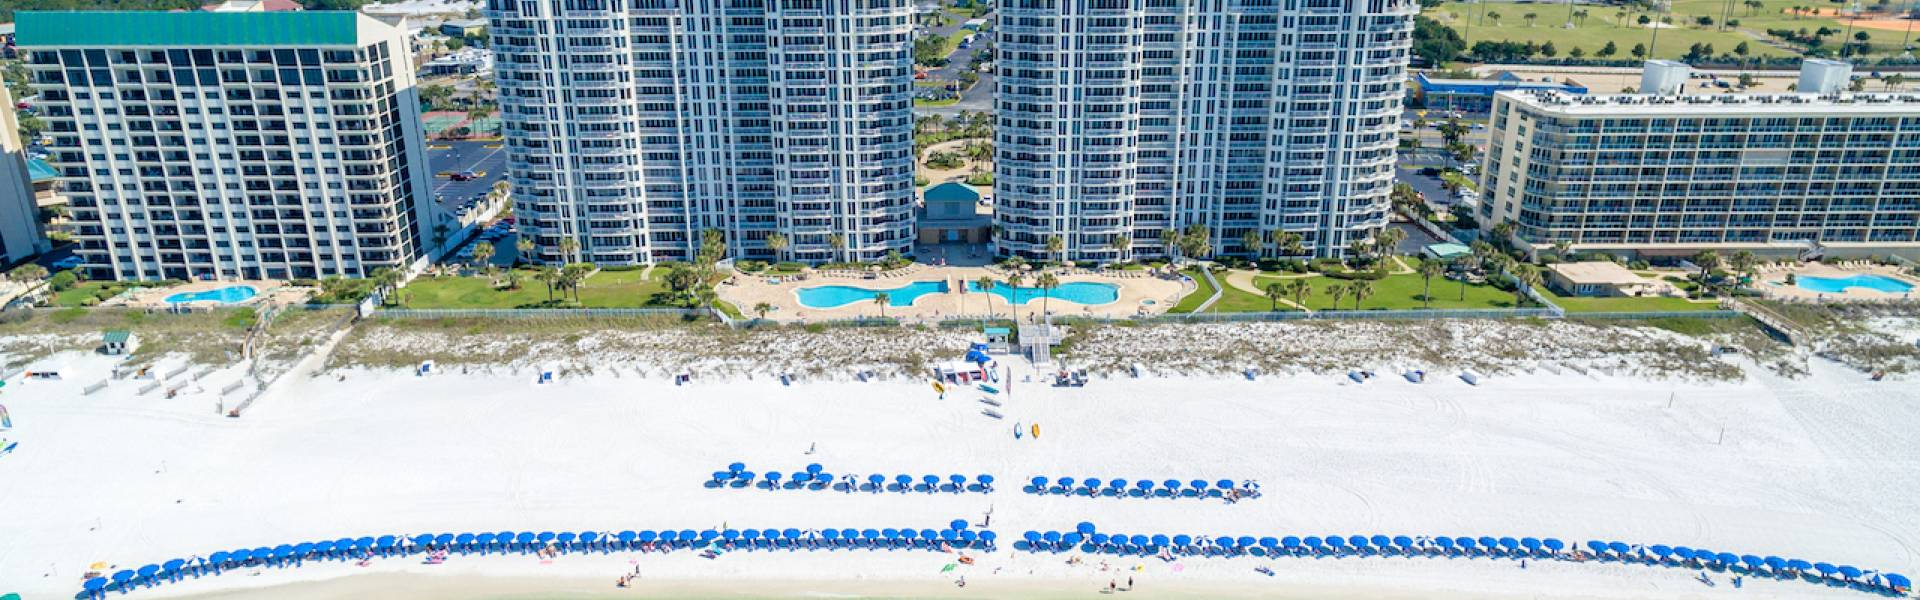 Compass Resorts Silver Beach Towers Aerial View Book Direct